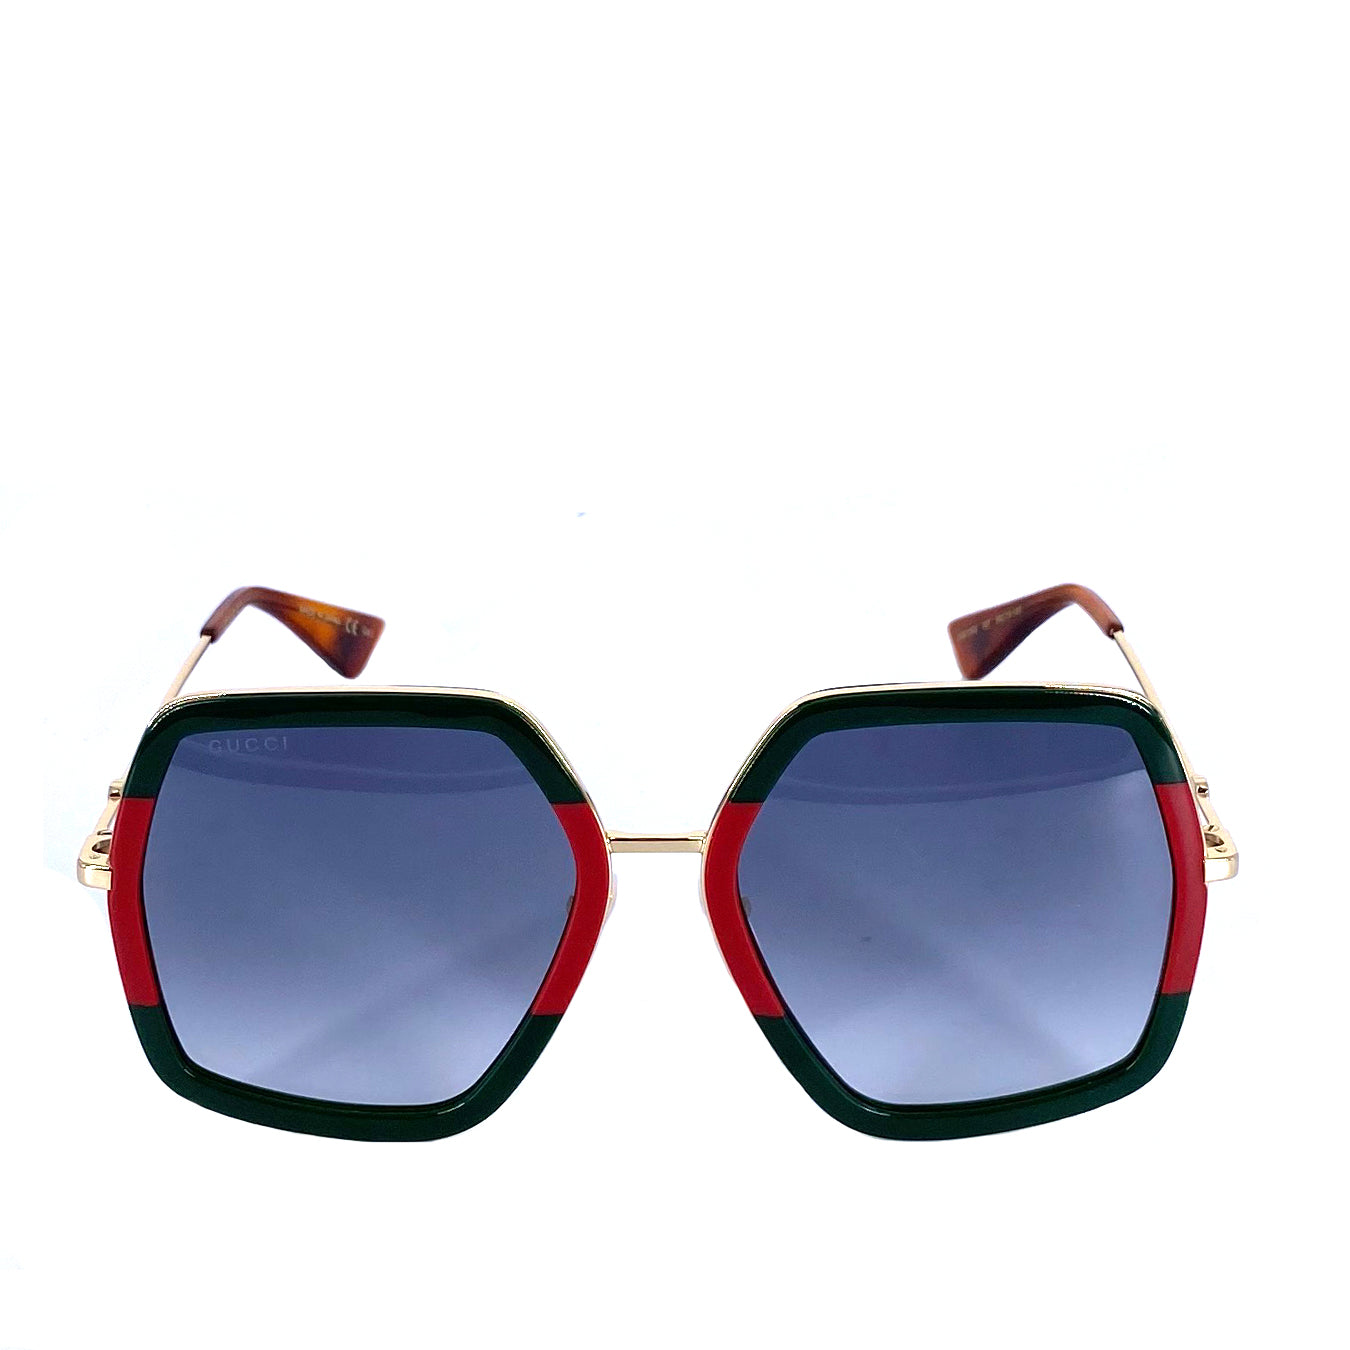 Gucci Square Sunglasses Red Green